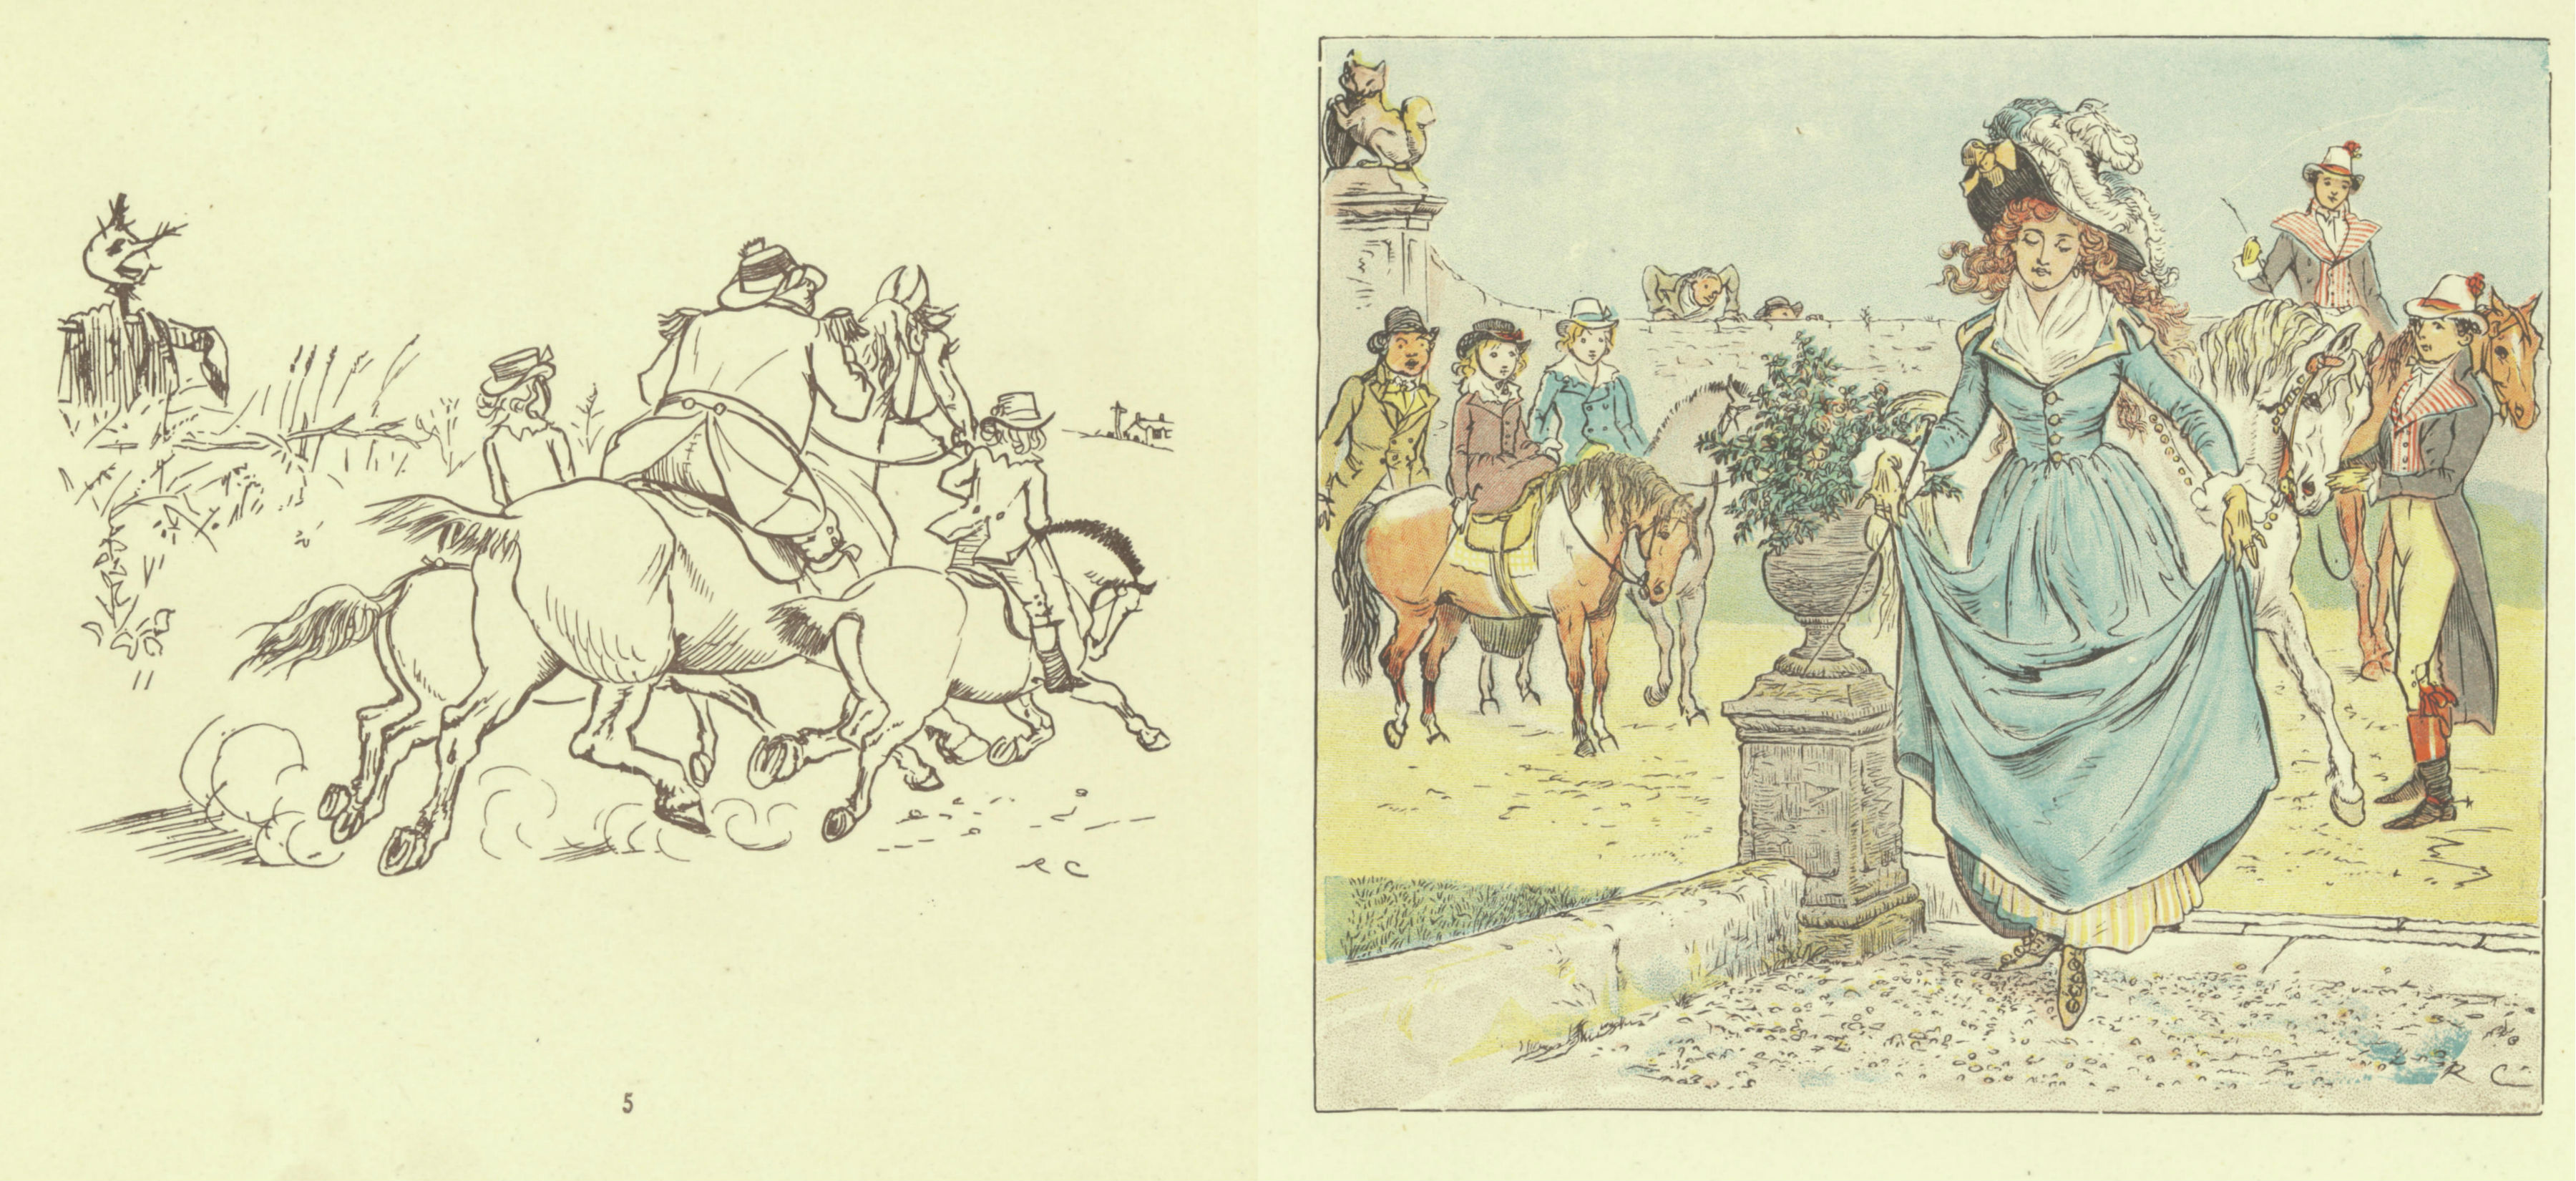 Illustrations from Ride a cock horse to Banbury Cross